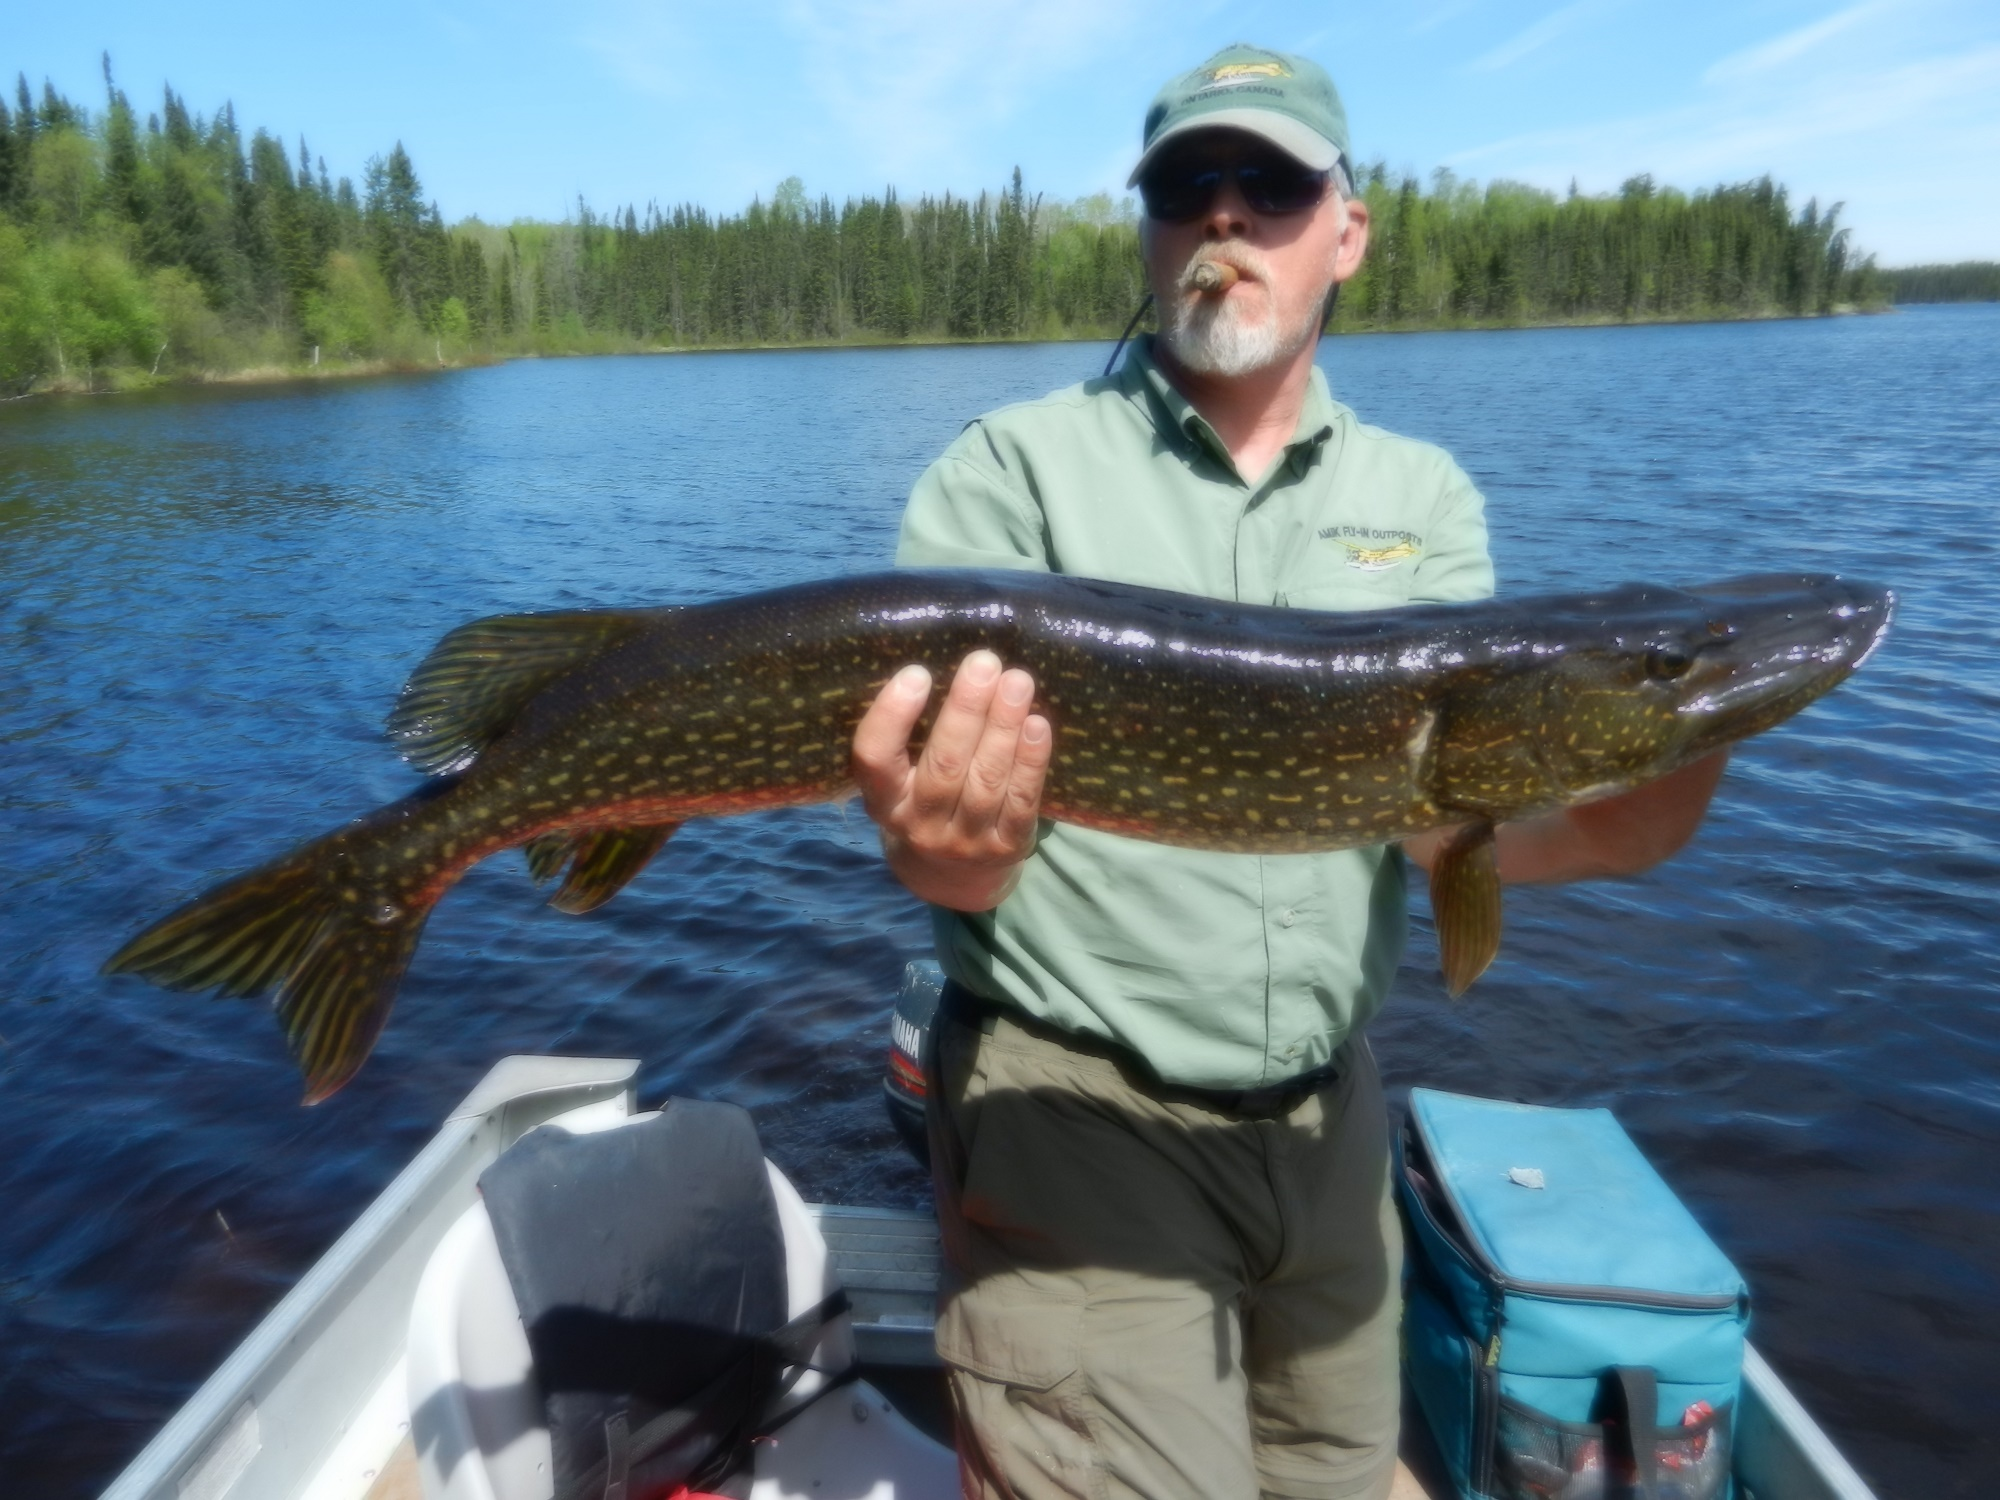 Findlay lake trophy fish 2014 canadian fly in fishing for Canadian fly in fishing